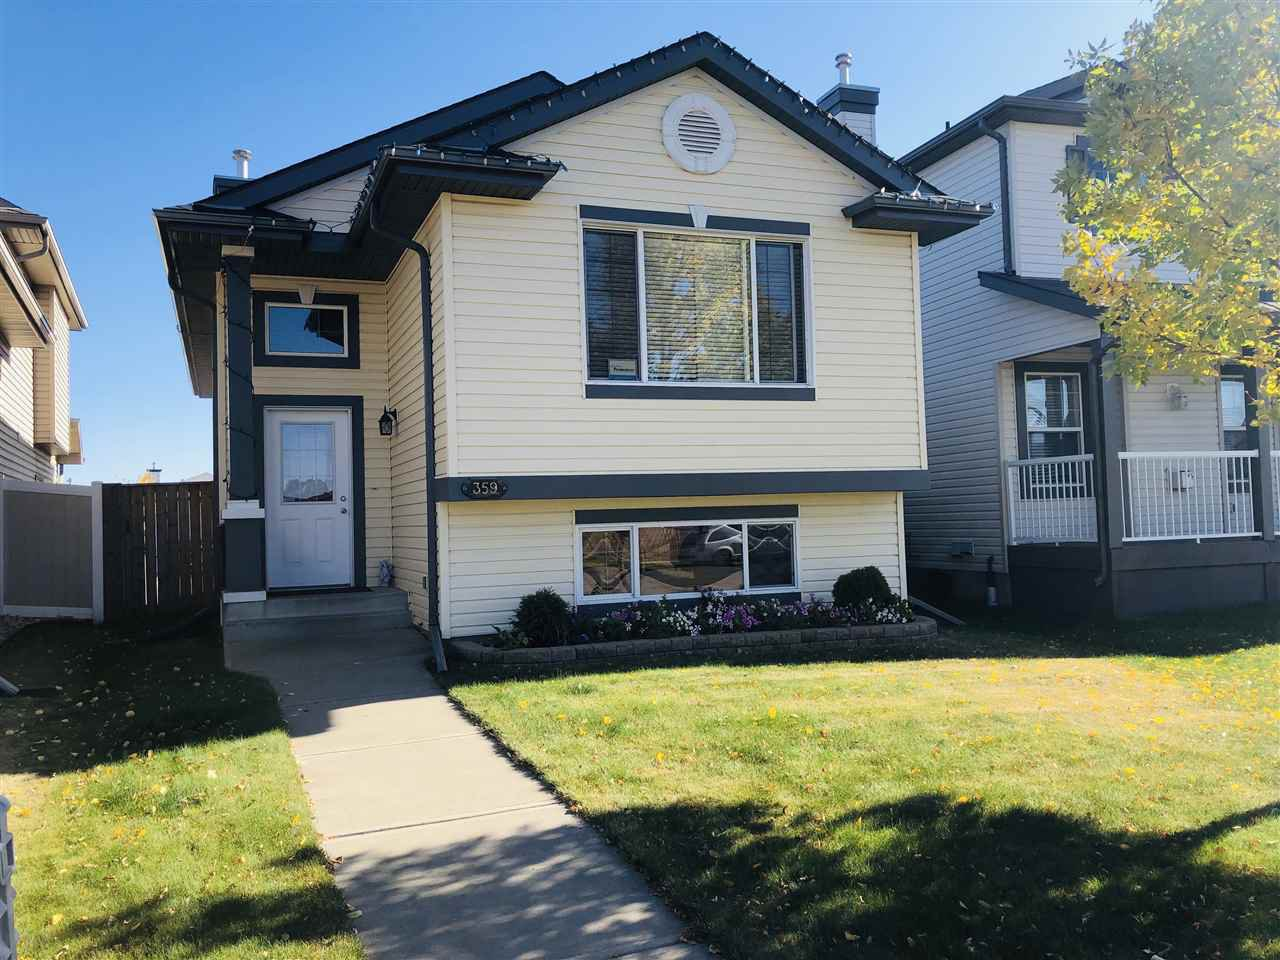 Main Photo: 359 Brintnell Boulevard in Edmonton: Zone 03 House for sale : MLS®# E4216729